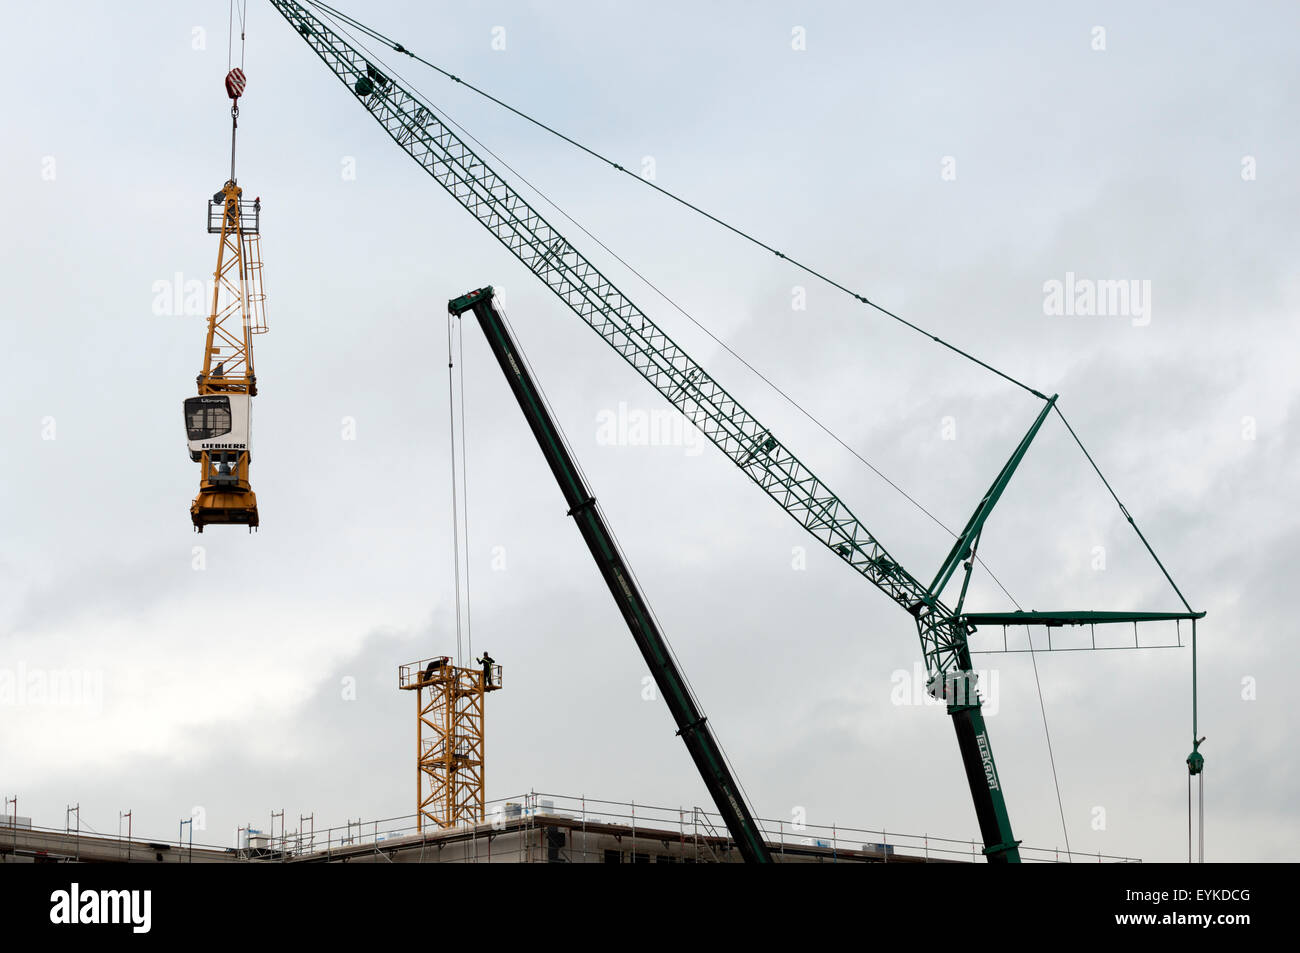 Construction workers dismantling tower crane - Stock Image